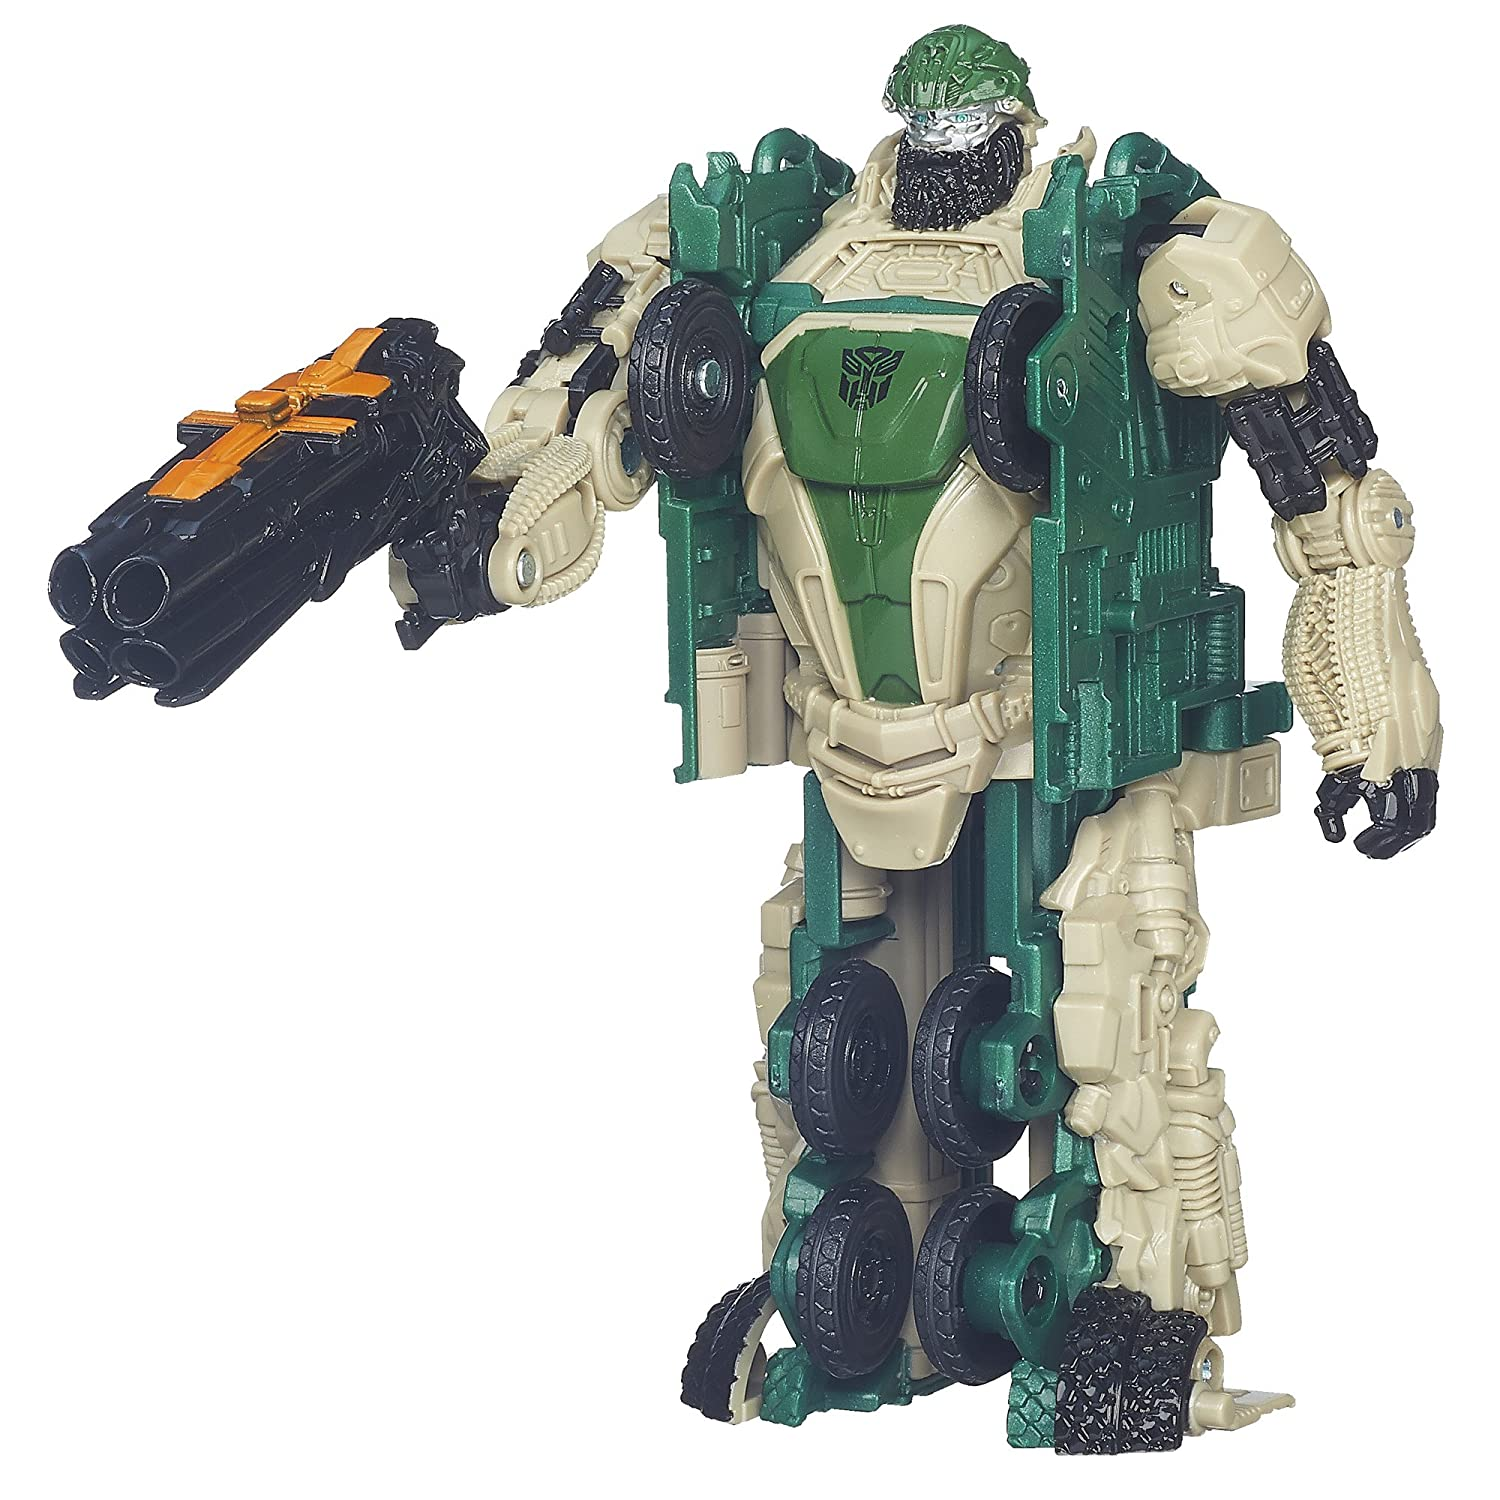 Transformers Age of Extinction Autobot Hound Power Attacker Hasbro A6162000